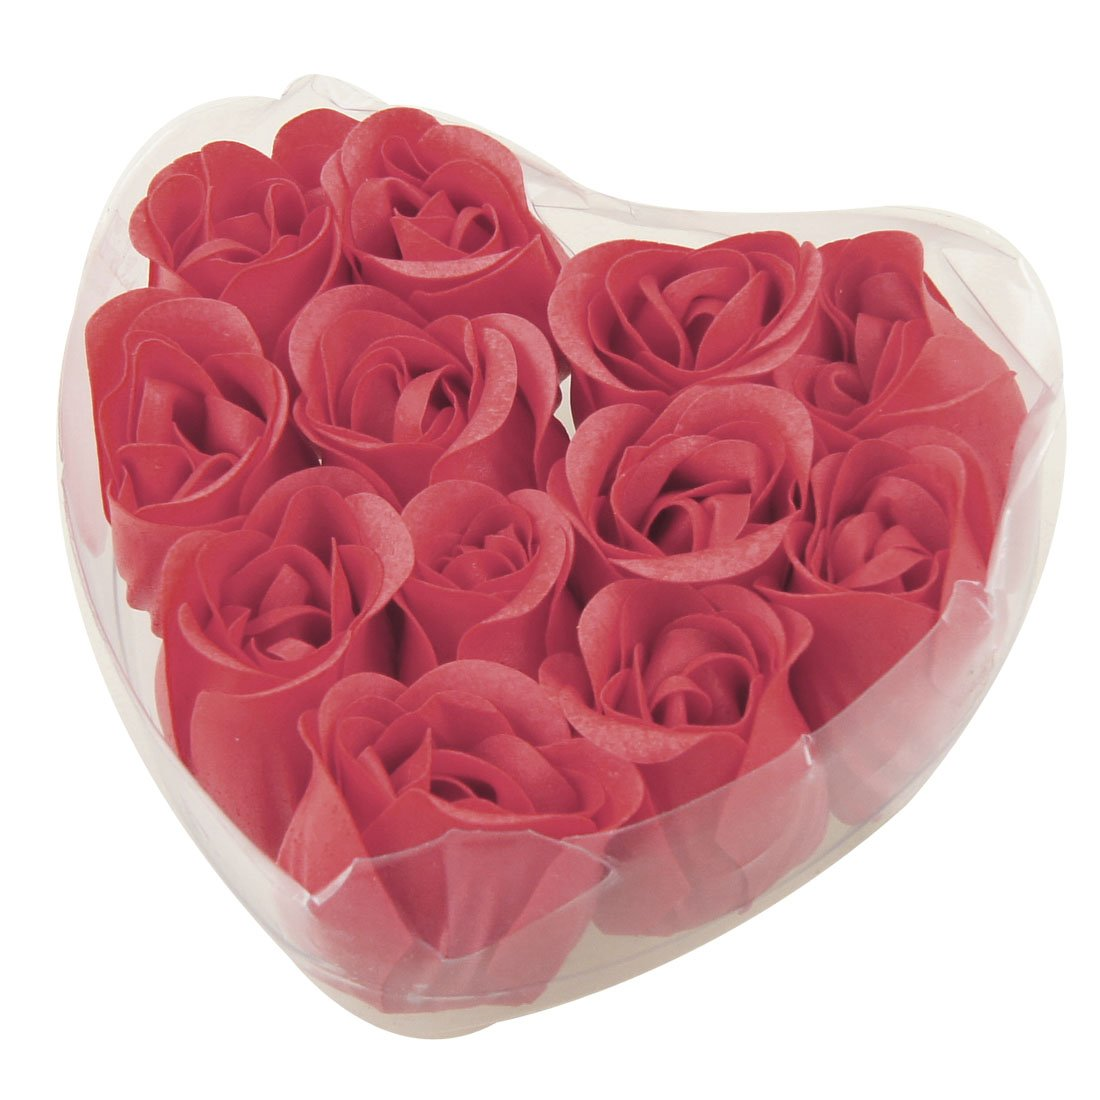 10x 12 Pcs Red Fragrant Rose Bud Petal Soap Wedding Favor + Heart Shape Box(China (Mainland))